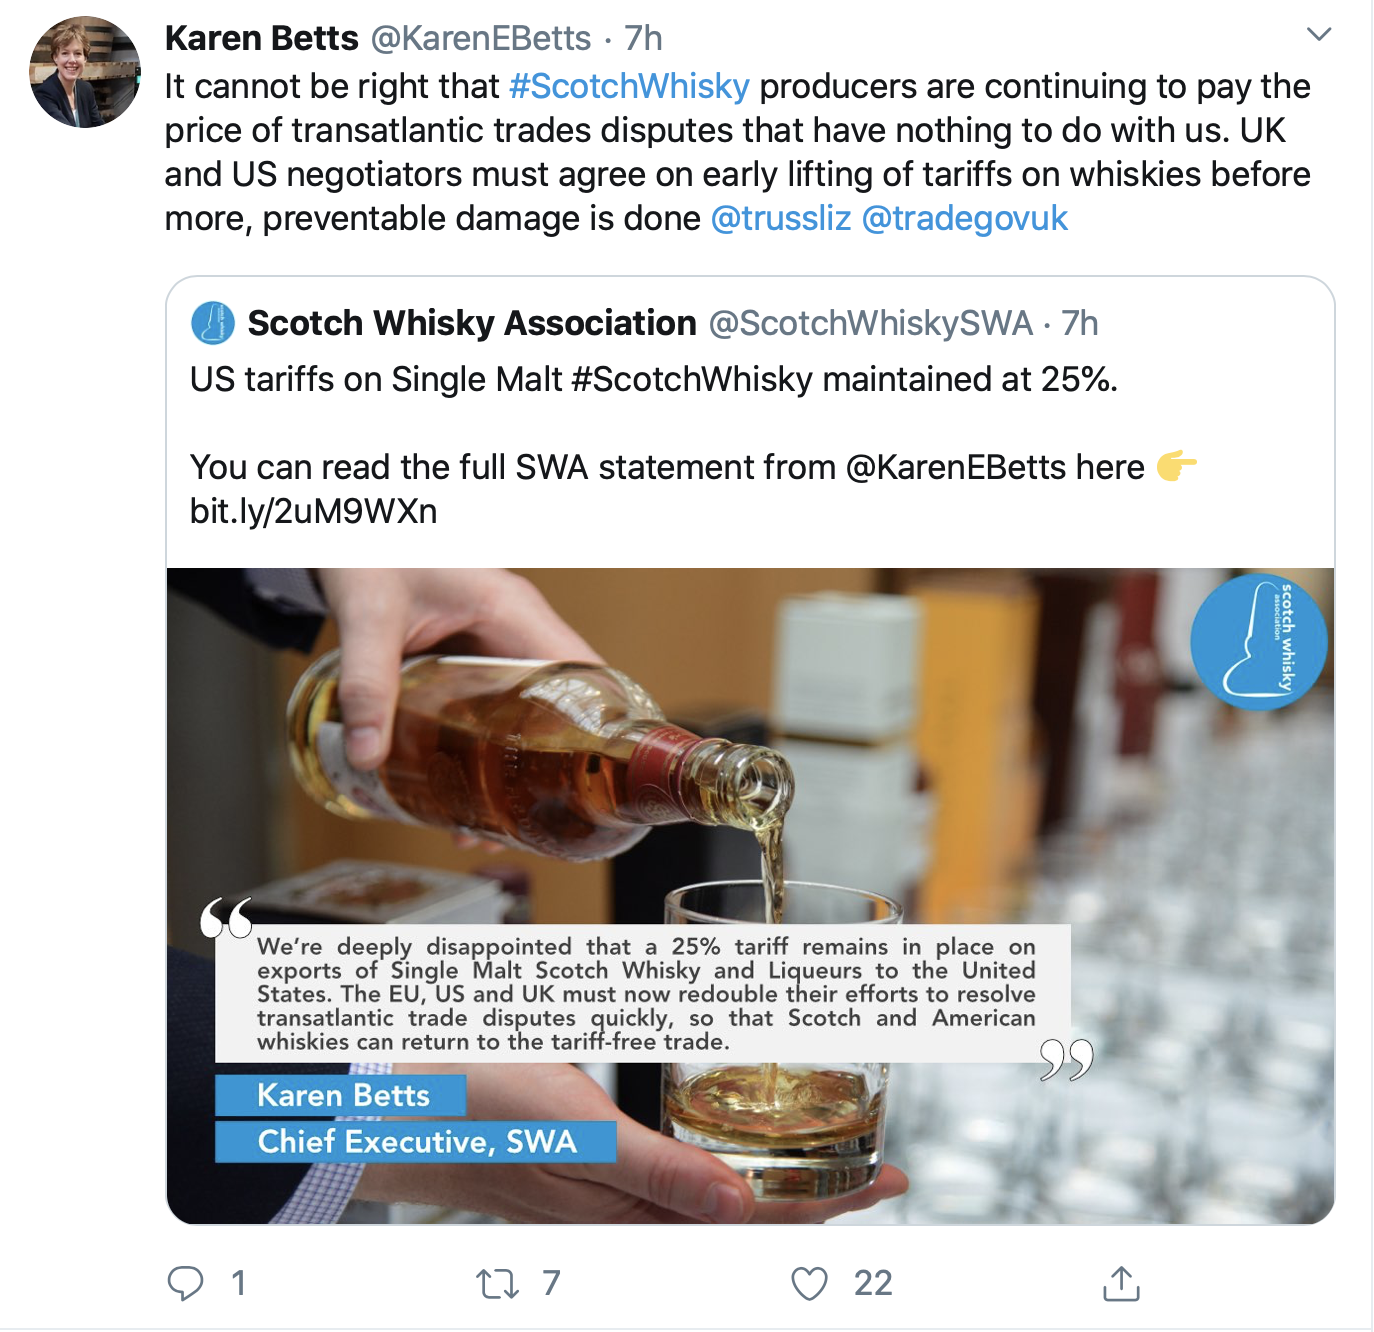 A Tweet from Scotch Whisky Association CEO Karen Betts reacting to the US decision to keep a tariff on single malt Scotch Whisky imports in place. Image courtesy Twitter.